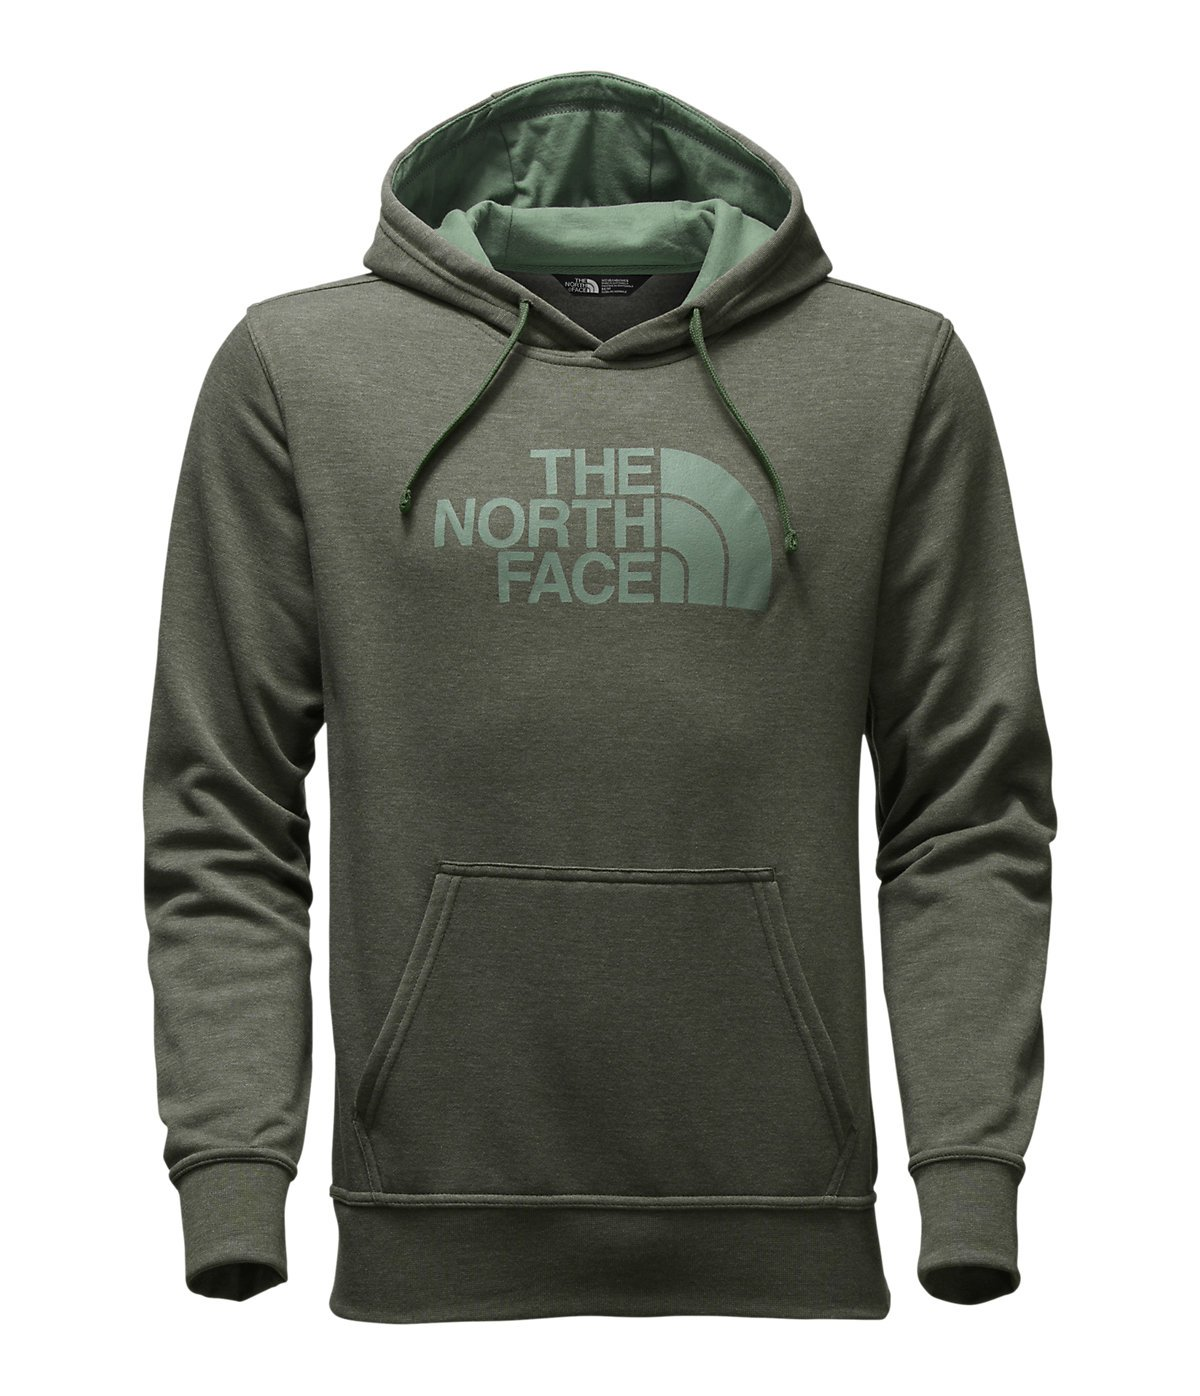 The Green North Heather/Duck Face ABIS_SPORTS メンズ B01IUOFTDA Ivy XX-Large|Climbing Ivy Green Dark Heather/Duck Green Climbing Ivy Green Dark Heather/Duck Green XX-Large, ATI.Shop:55e0c0ea --- jpworks.be